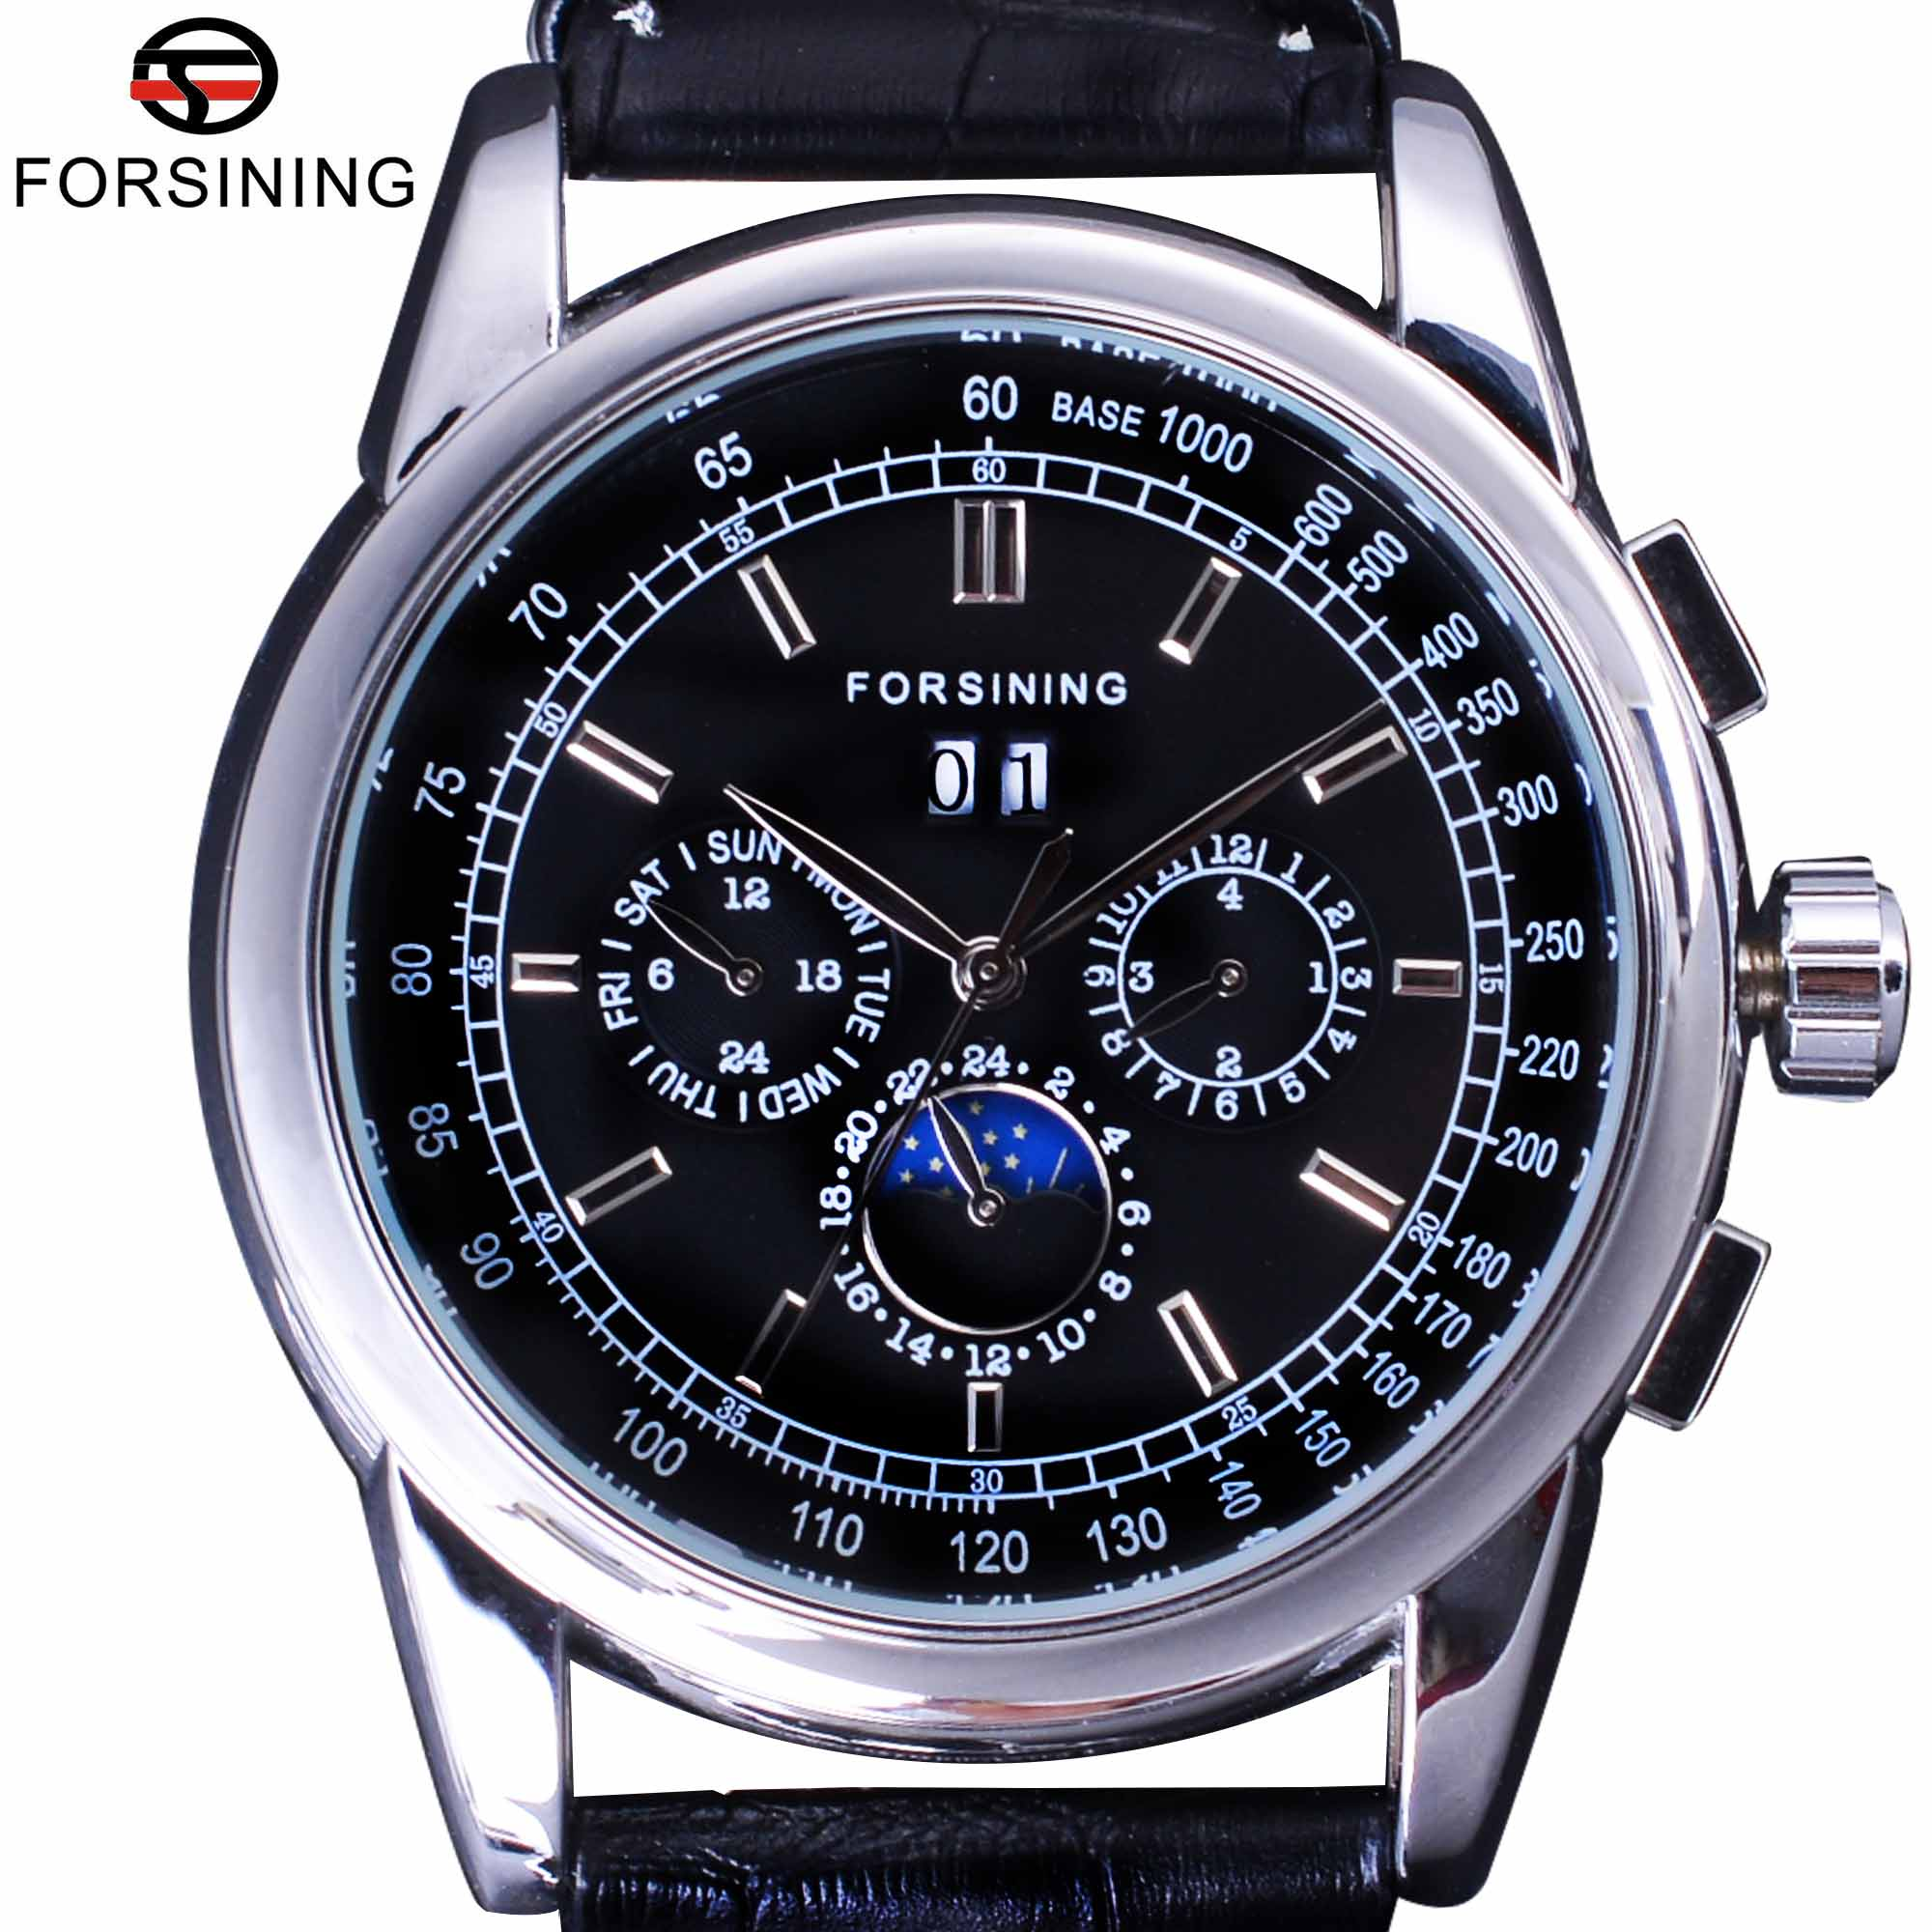 Forsining Luxury Moon Phase Design ShangHai Movement Fashion Casual Wear Automatic Watch Scale Dial Mens Watch Top Brand Luxury<br><br>Aliexpress